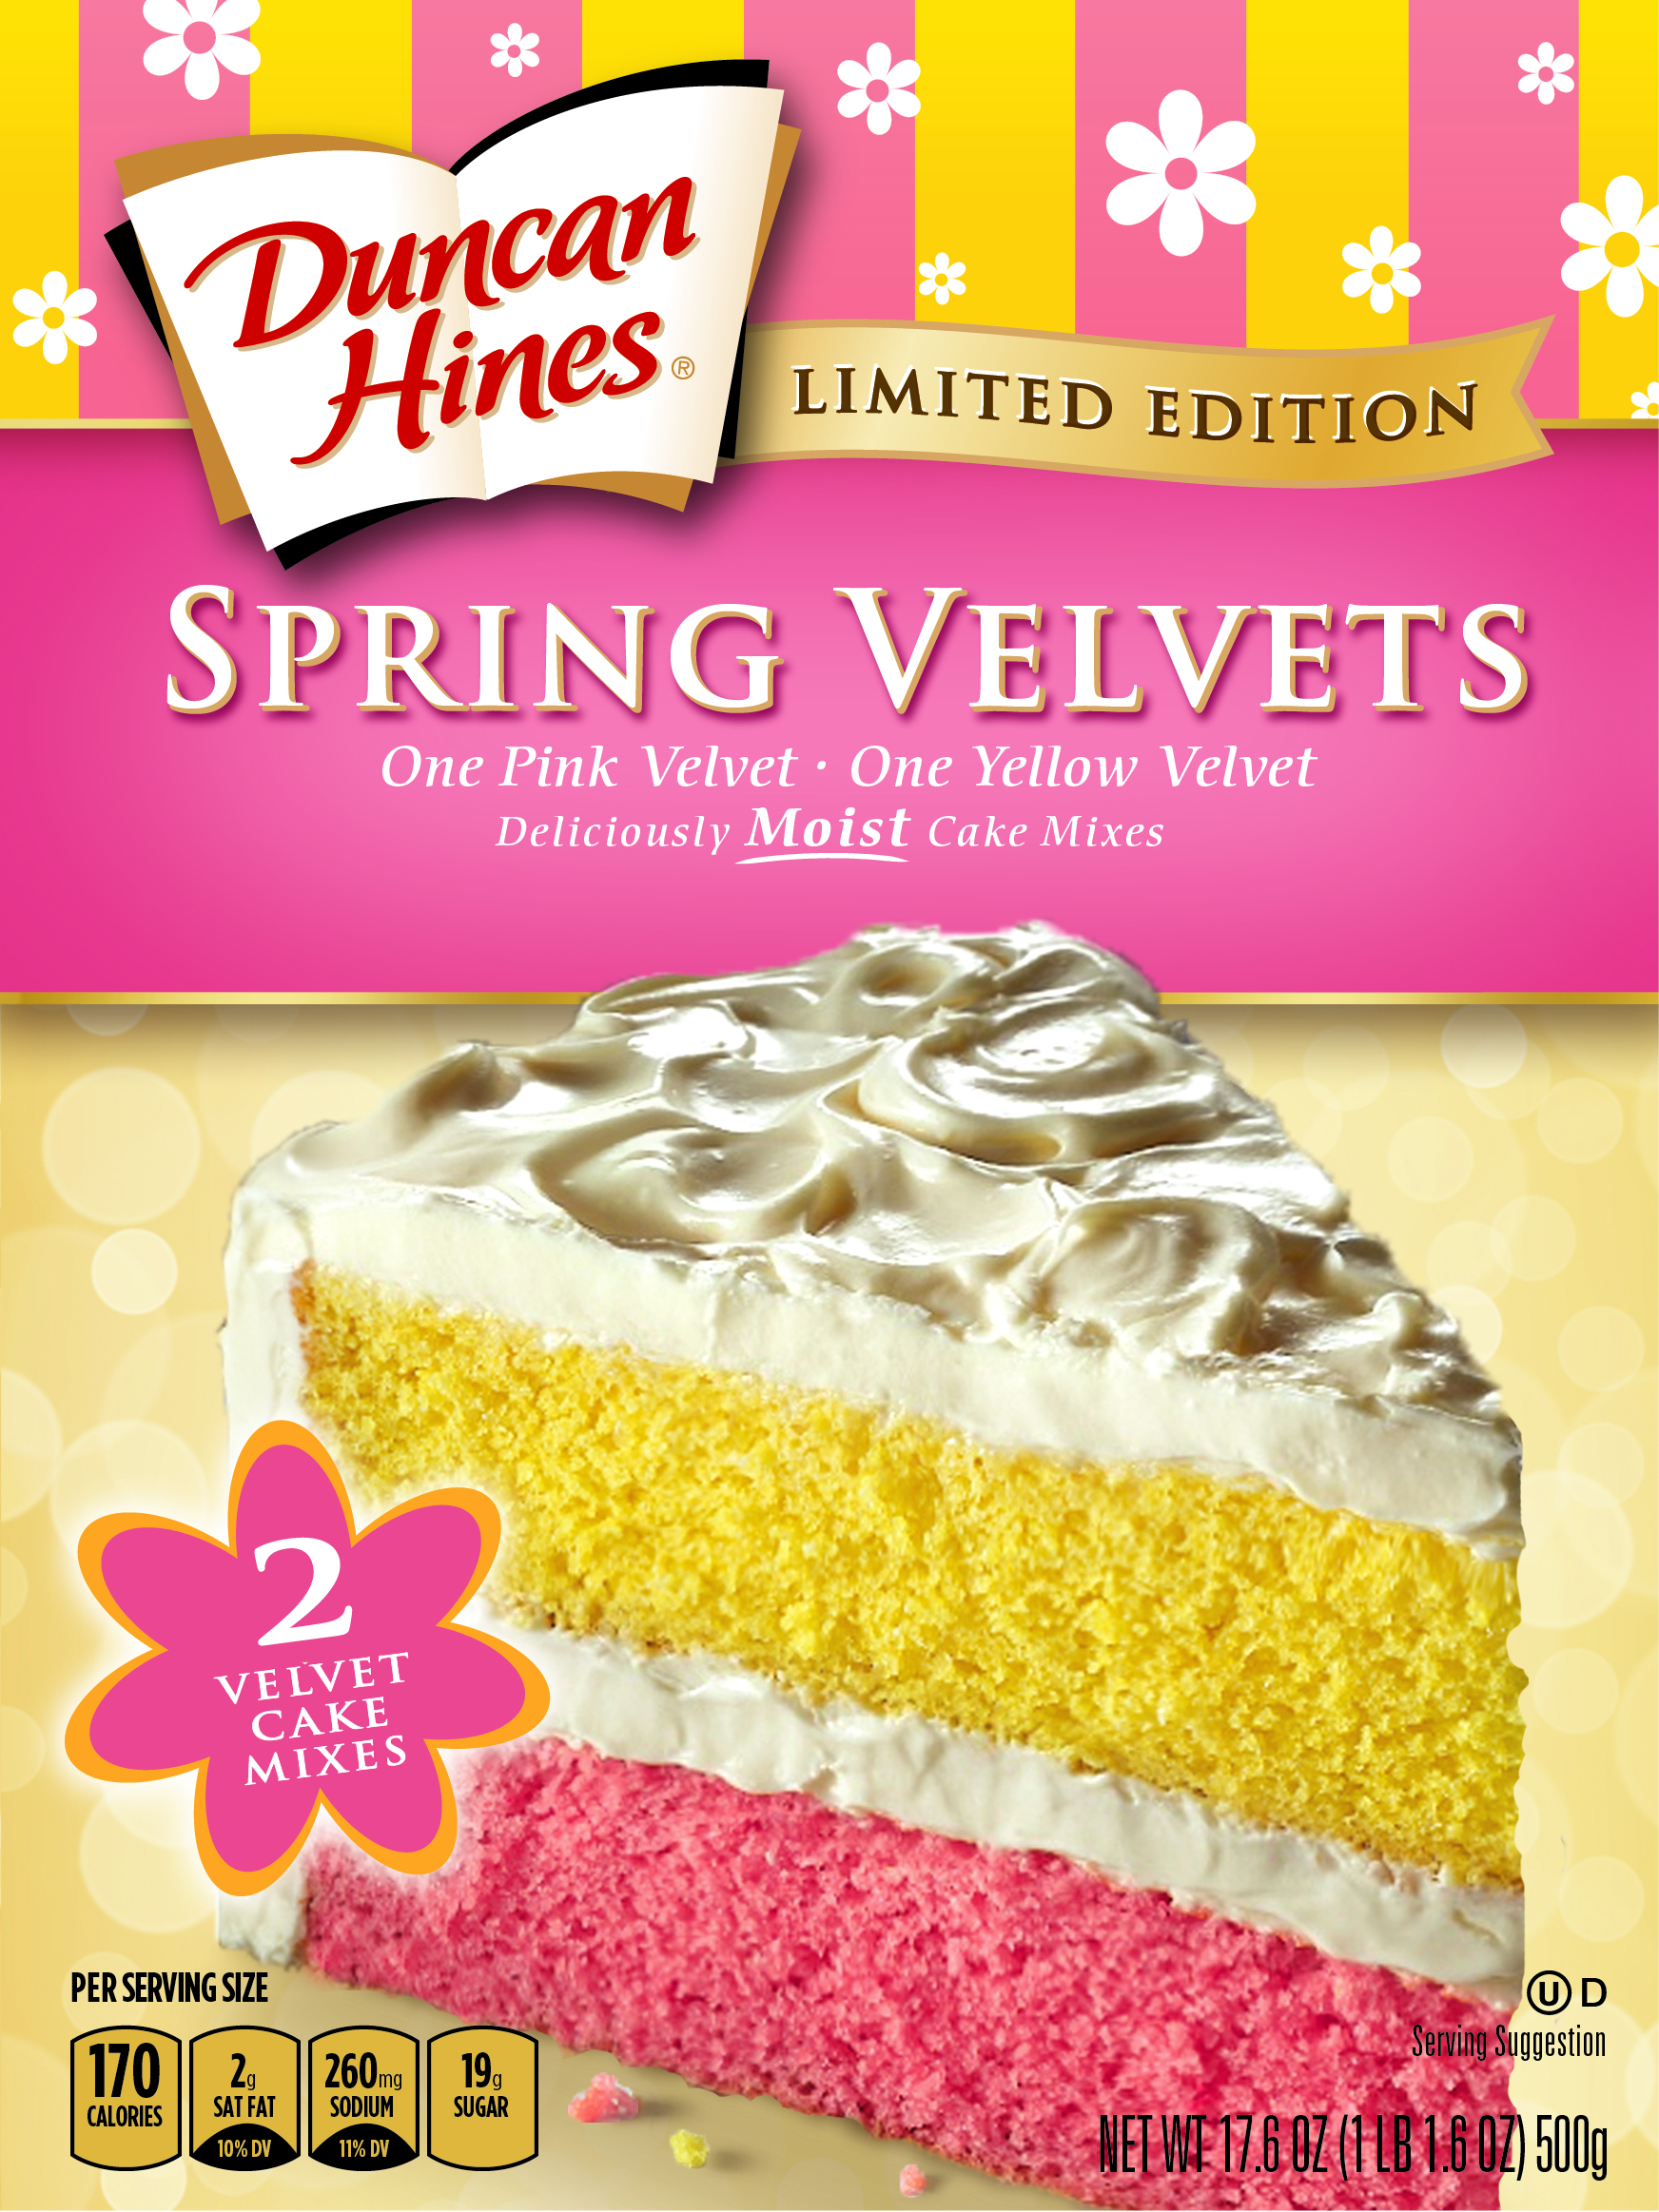 Unique Dh Spring Velvet Front Box Duncan Hines Spring Velvets Cake Mixes Make Your Easter Cake Duncan Hines Recipes Applesauce Spice Cake Duncan Hines Recipes Mississippi Mud Brownies nice food Duncan Hines Recipes